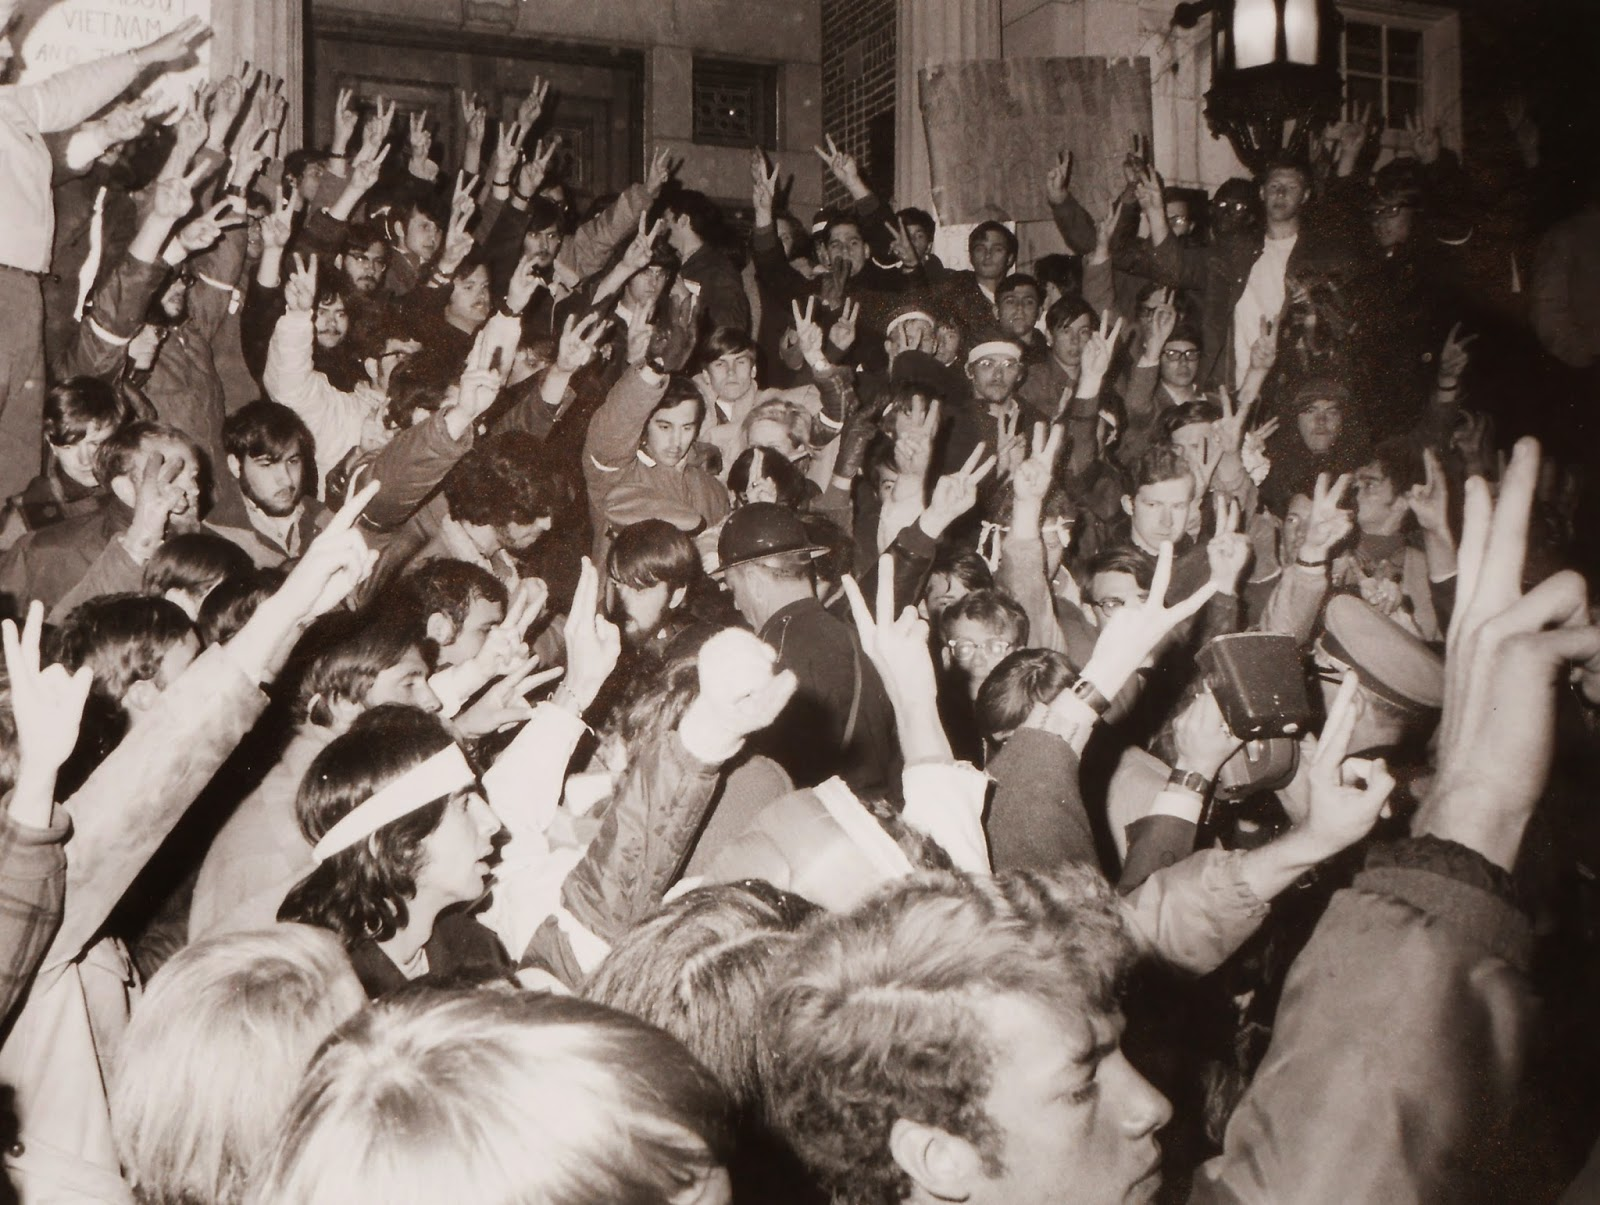 A black and white photograph of a dense crowd of people throwing up peace signs.